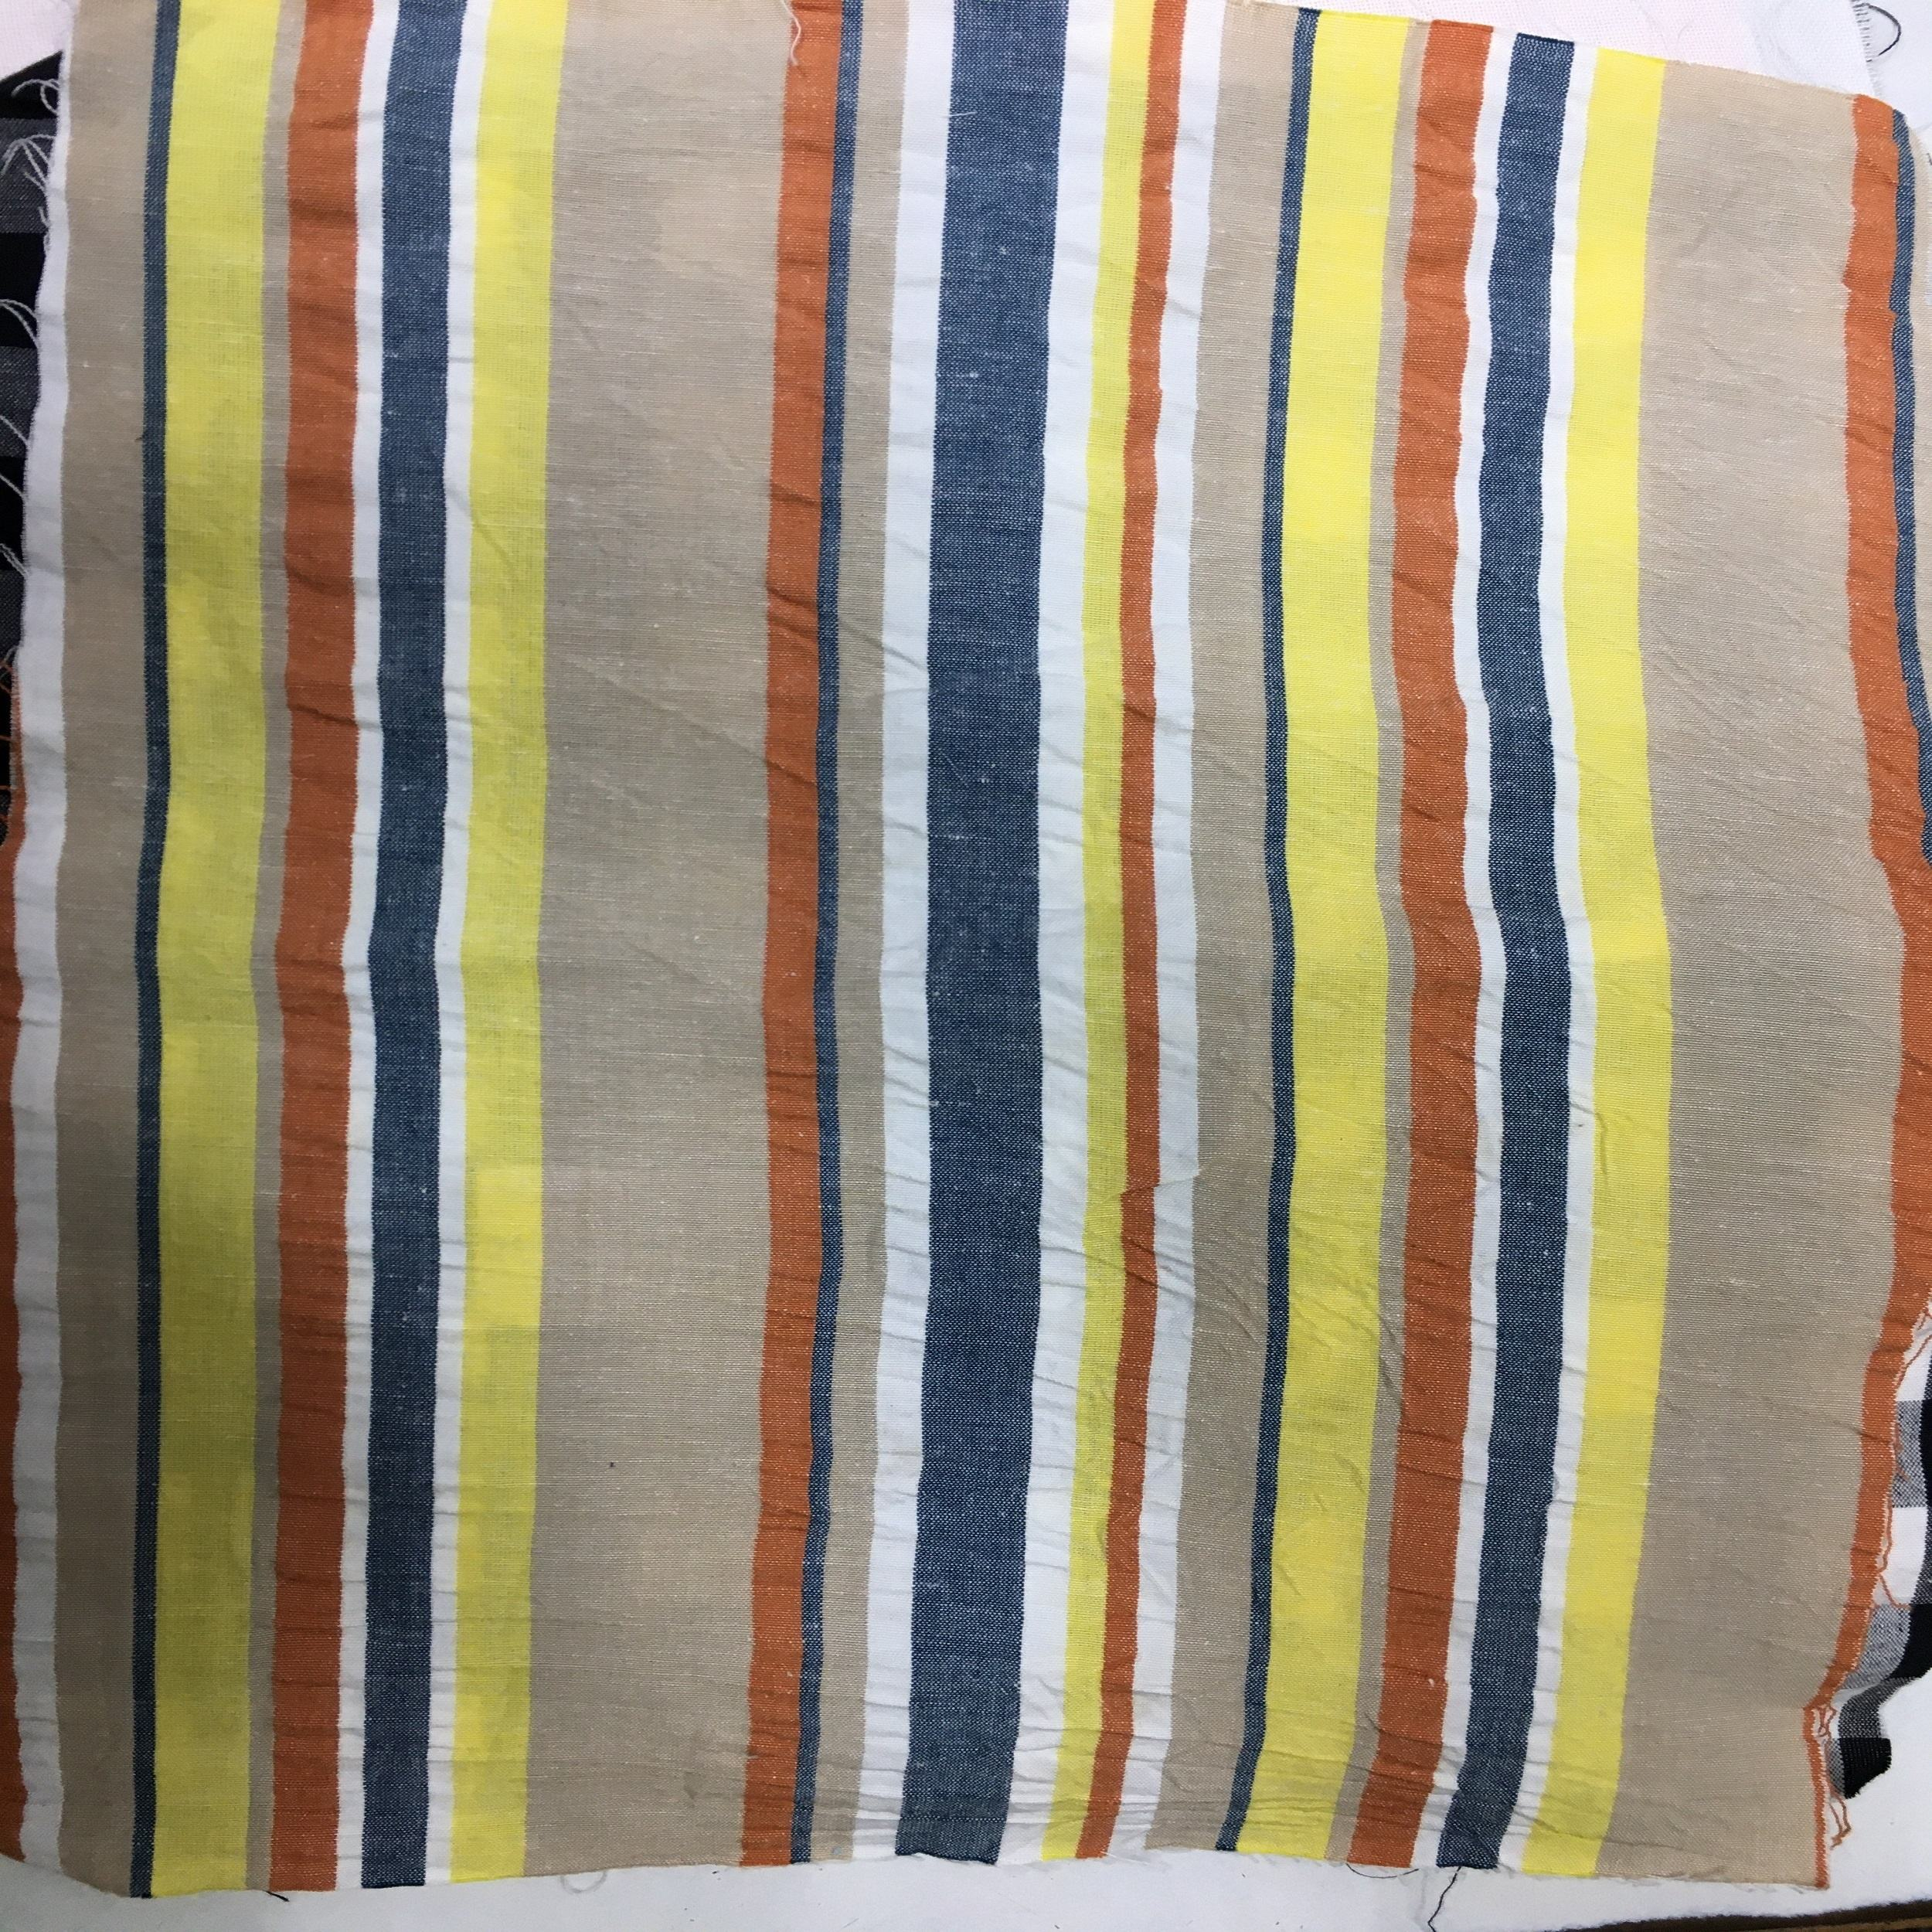 YARN DYED ORGANIC COTTON STRIPE FABRIC MADE IN INDIA, YARN DYED COTTON WITH GOTS CERTIFICATION